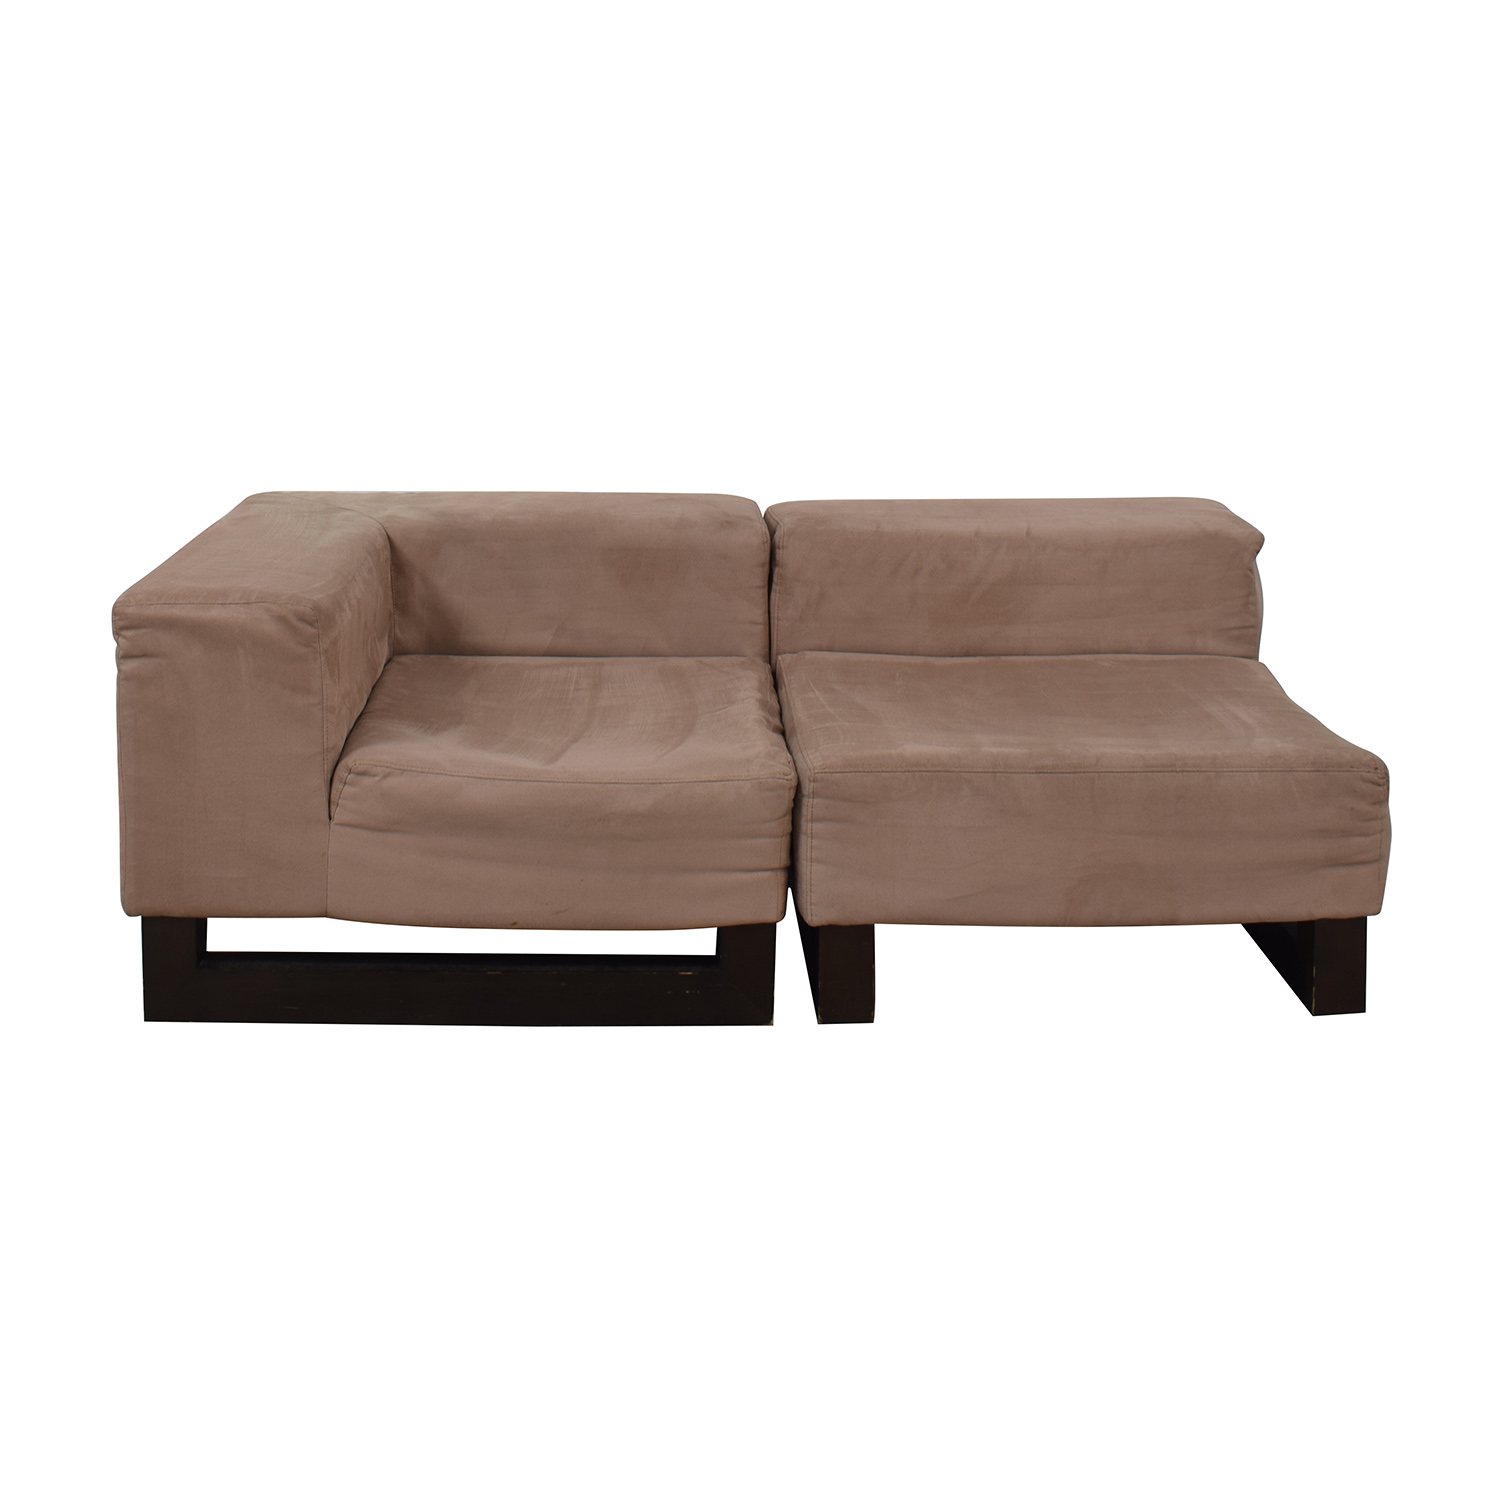 West Elm West Elm Lounge Sectional on sale